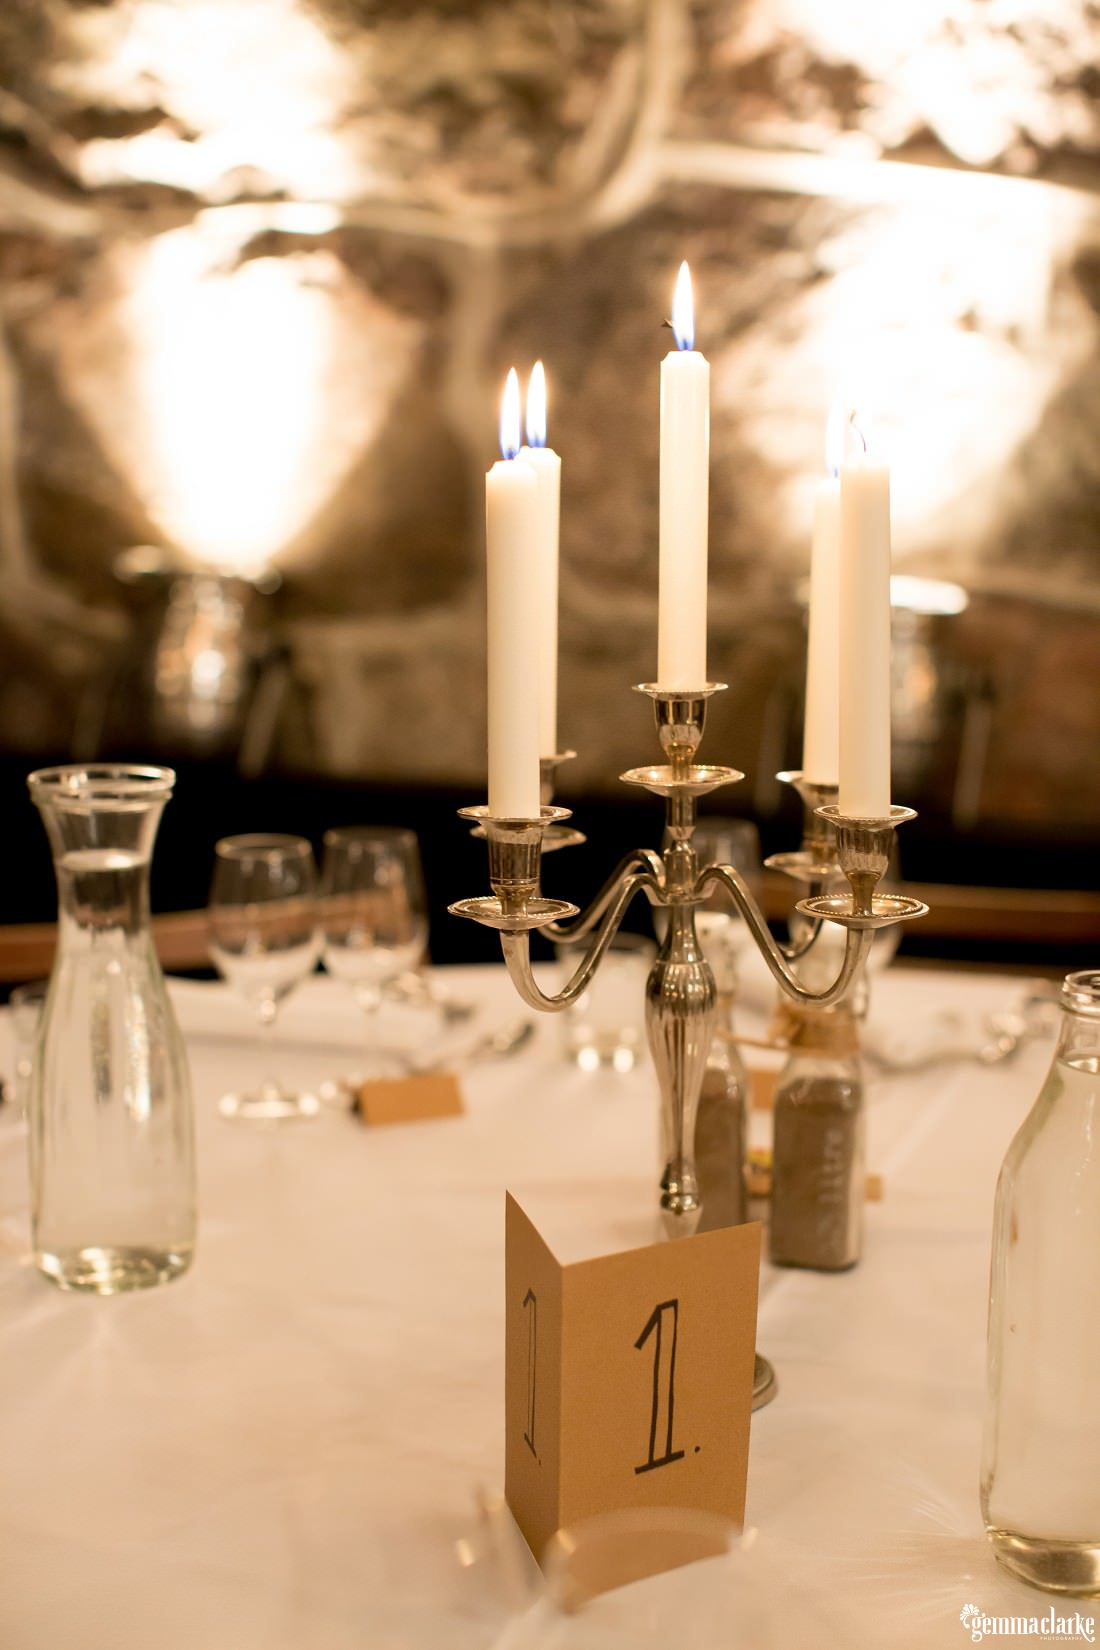 A close up of a candelabra on a table at a wedding reception